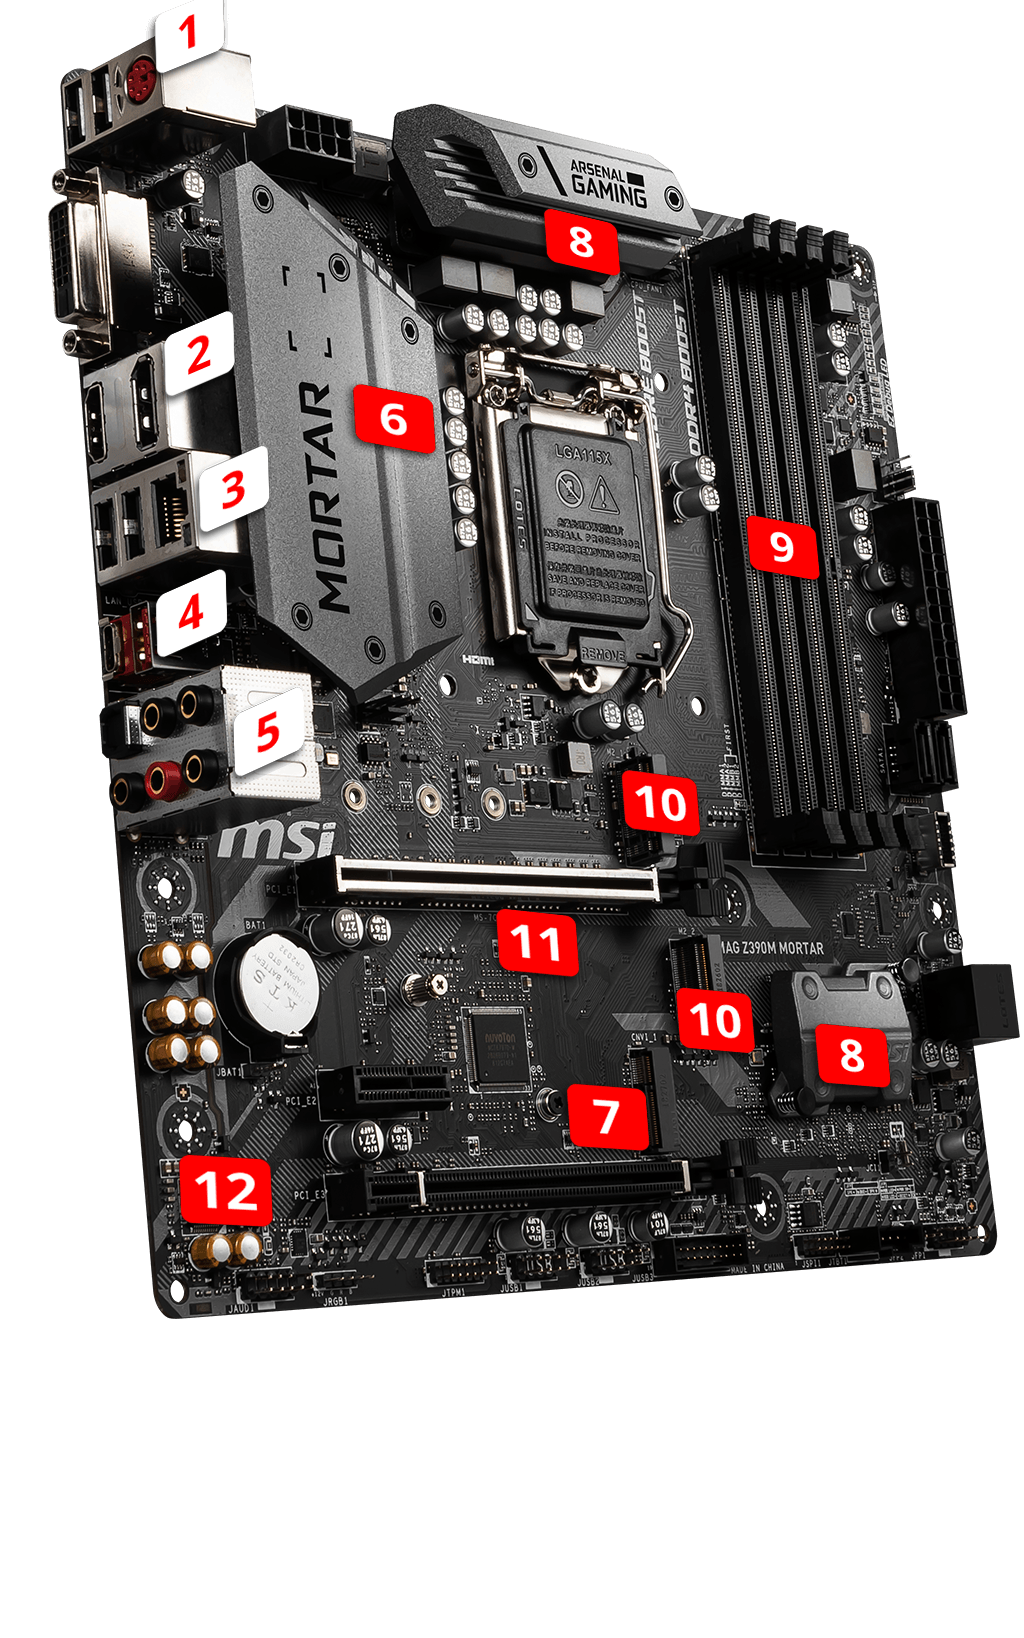 MSI MAG Z390M MORTAR overview